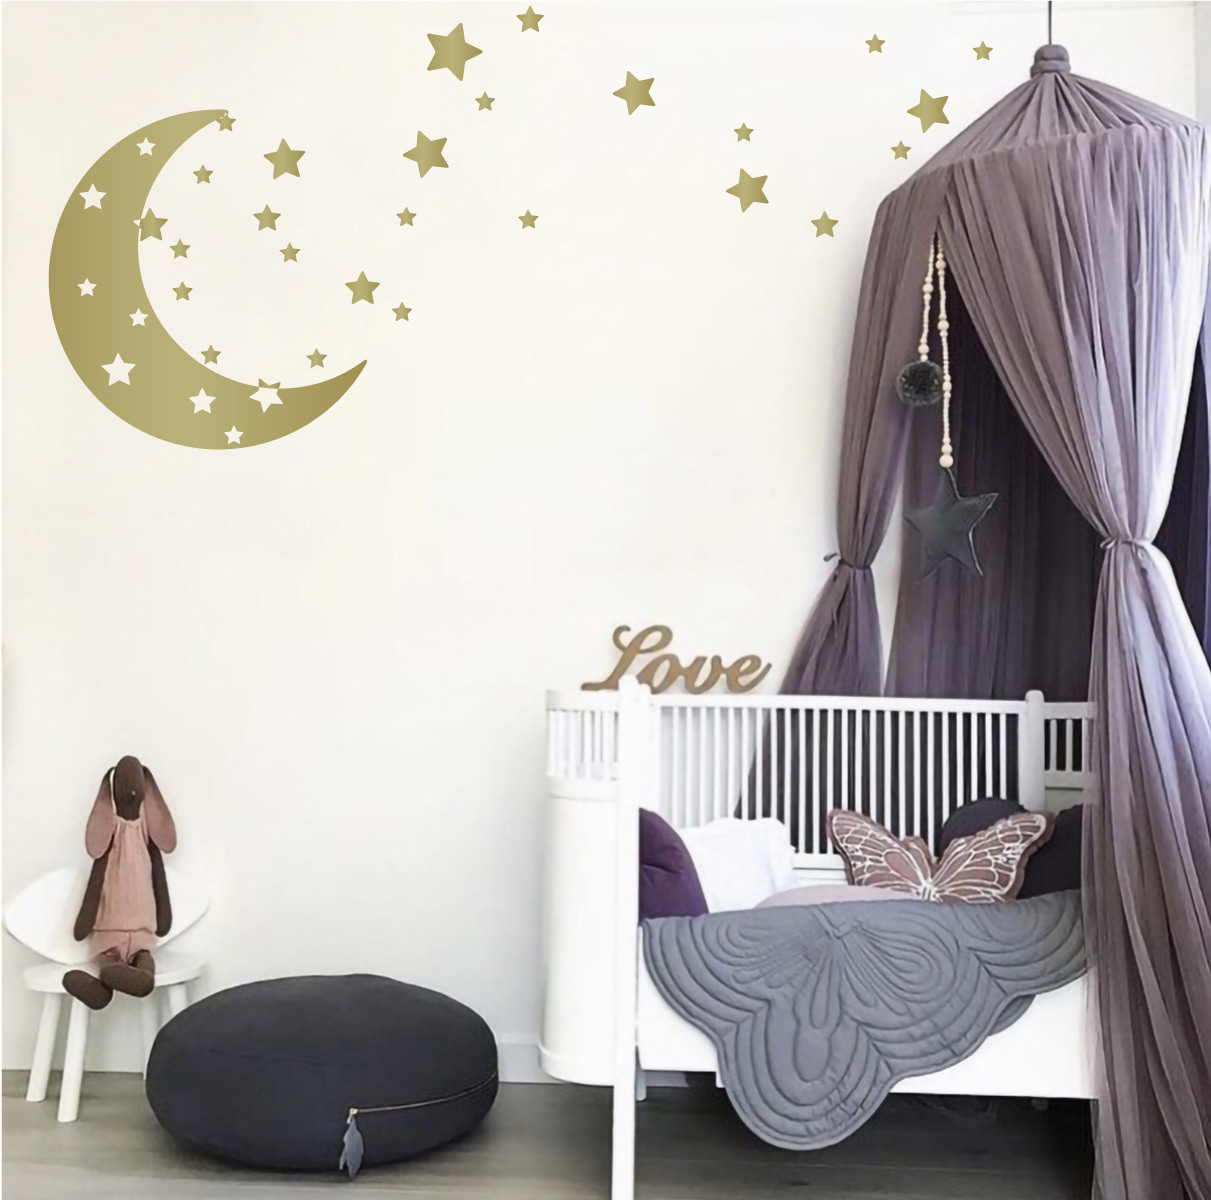 Stars Room Decor Moon Stars Nursery Wall Decals Removable Wall Decor Stickers For Boys Or Girls Kids Room